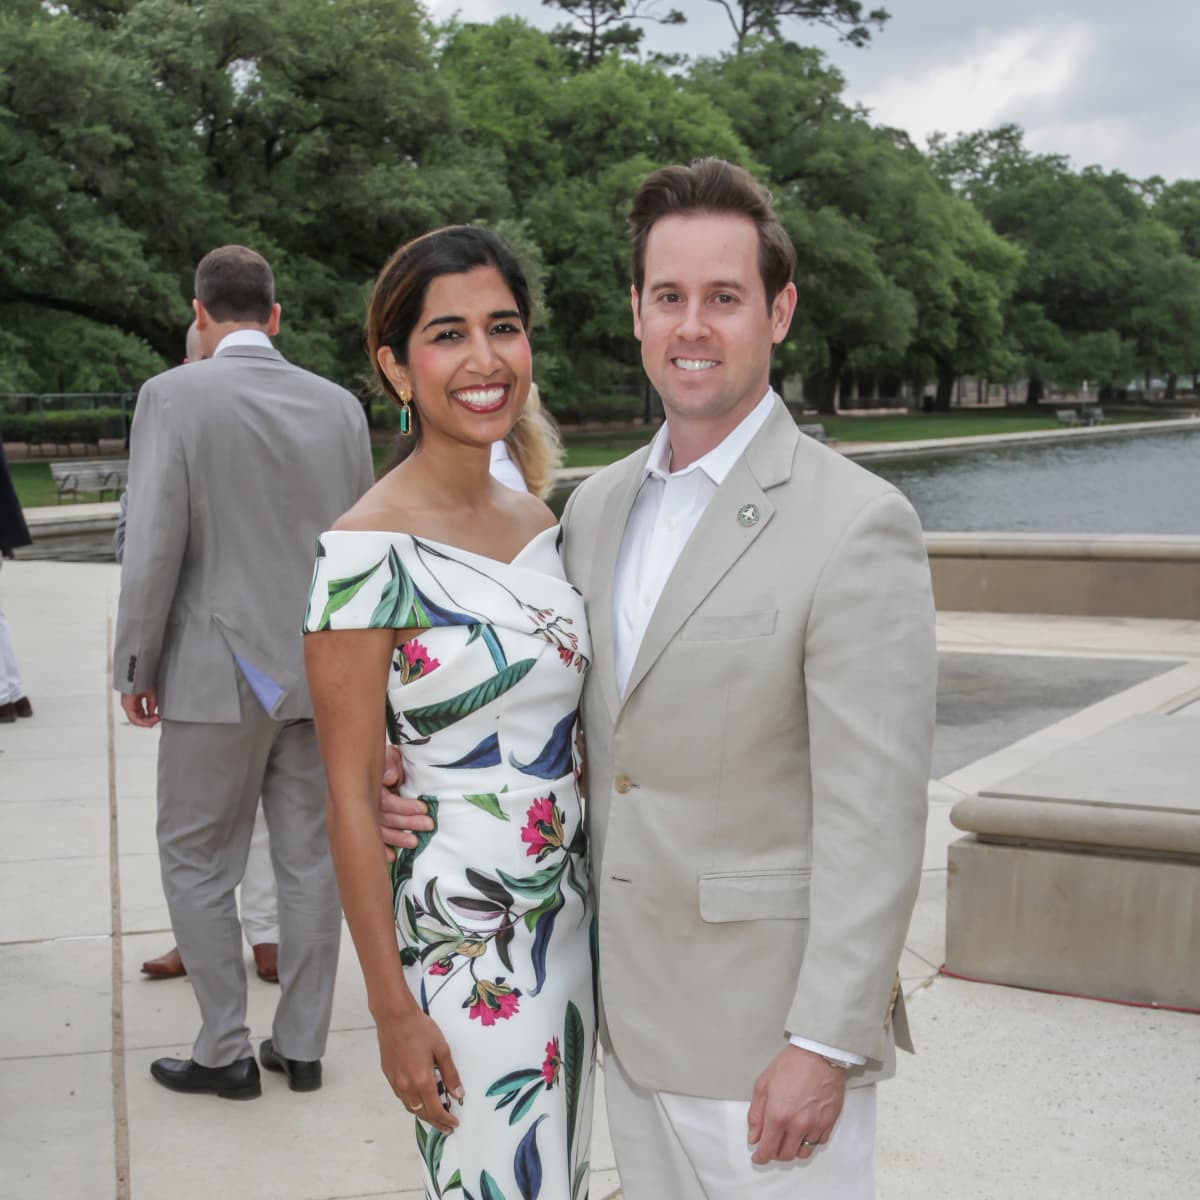 Hermann Park Evening in the Park 5/16, Divya Brown, Chris Brown